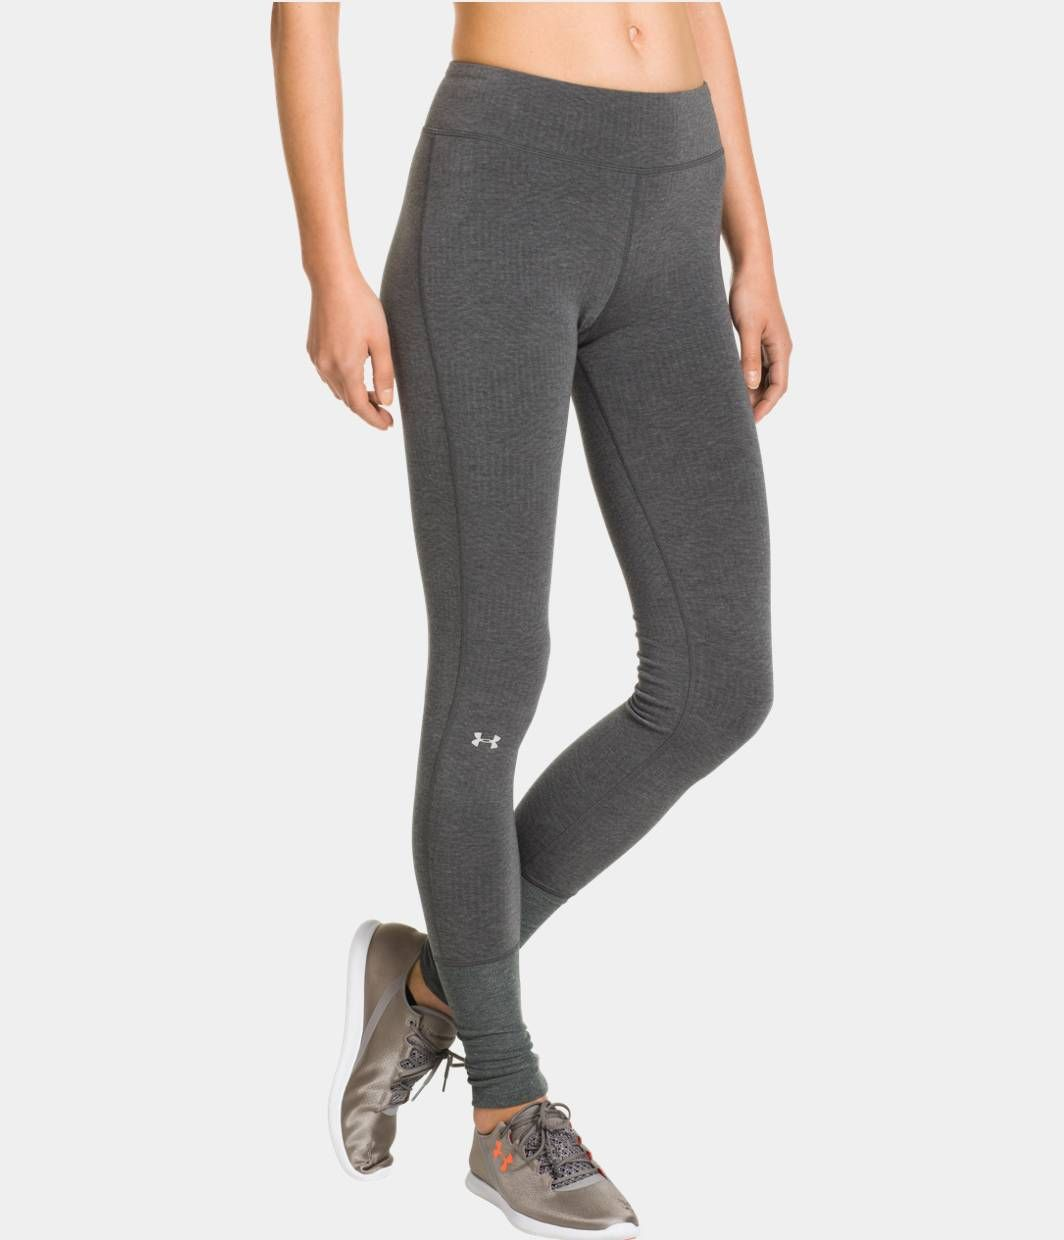 Women's ColdGear® Infrared Legging | Under Armour US